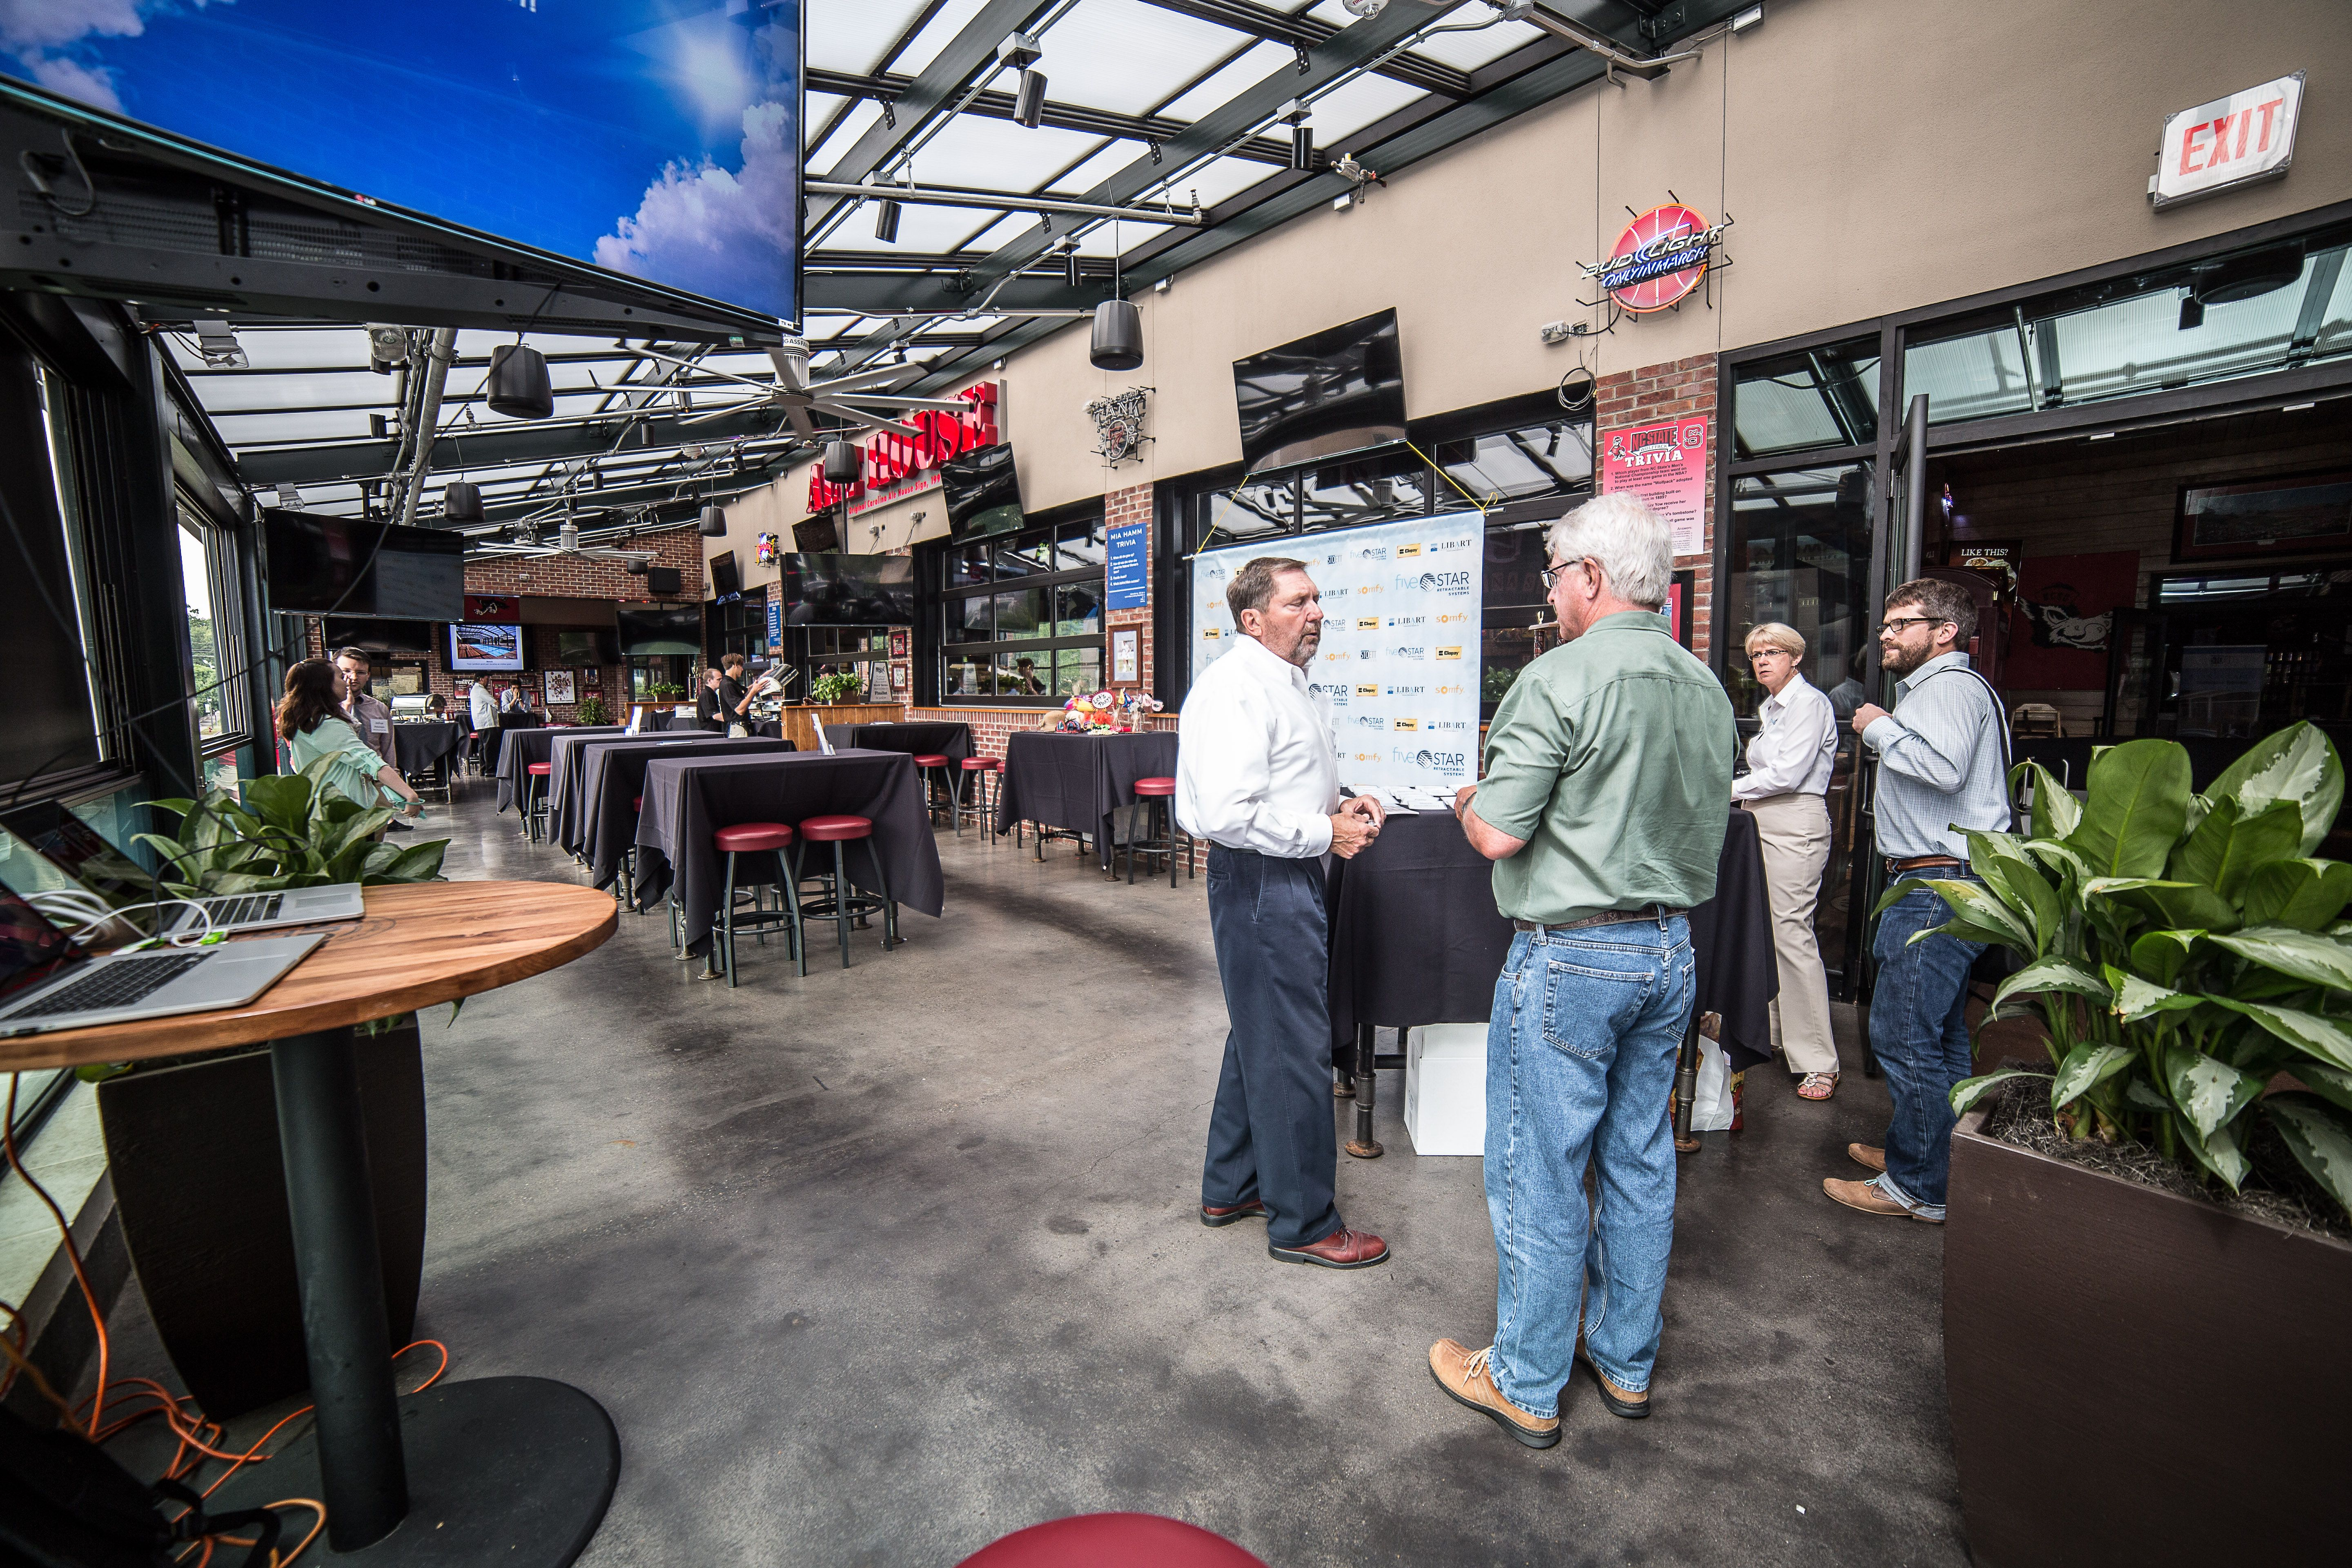 Carolina Ale House Raleigh North Carolina Fsrs Installed A Libart Solaglide Skylight Retractable Roof And The First Solar Screens Skylight Retractable Roof